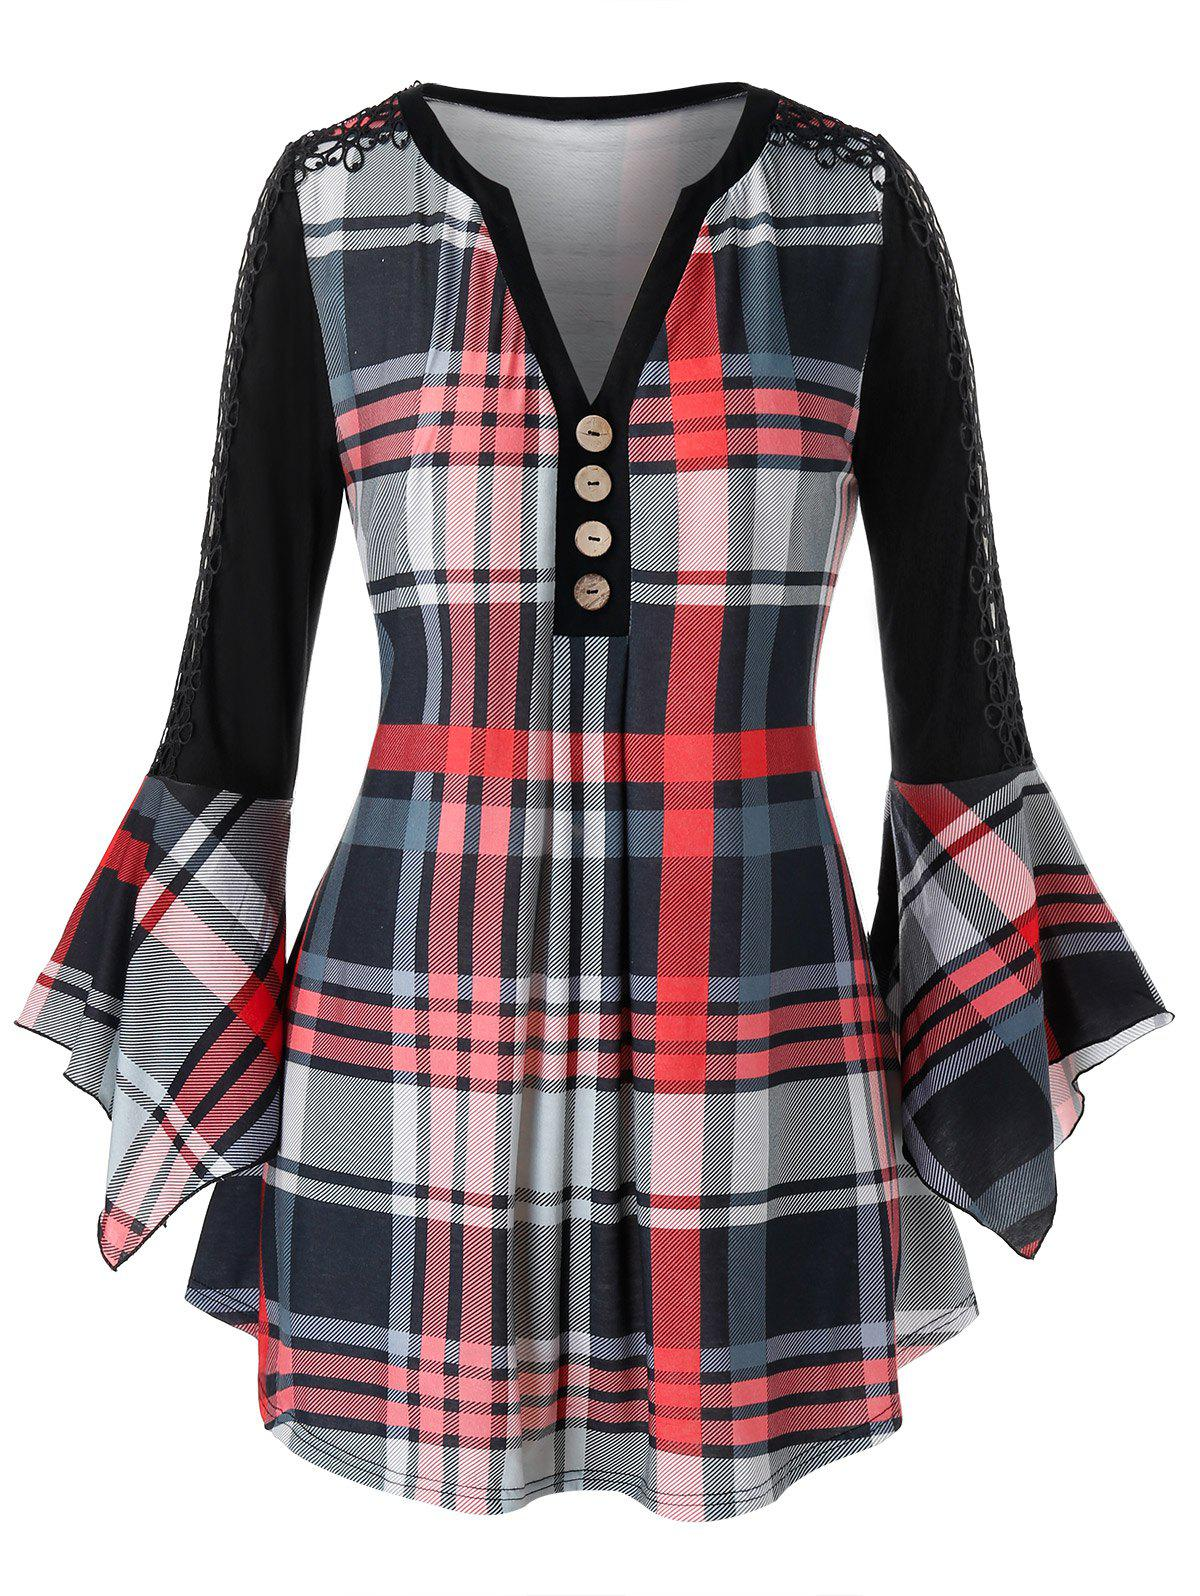 Trendy Plus Size Plaid Lace Insert Ruffle Sleeve Blouse